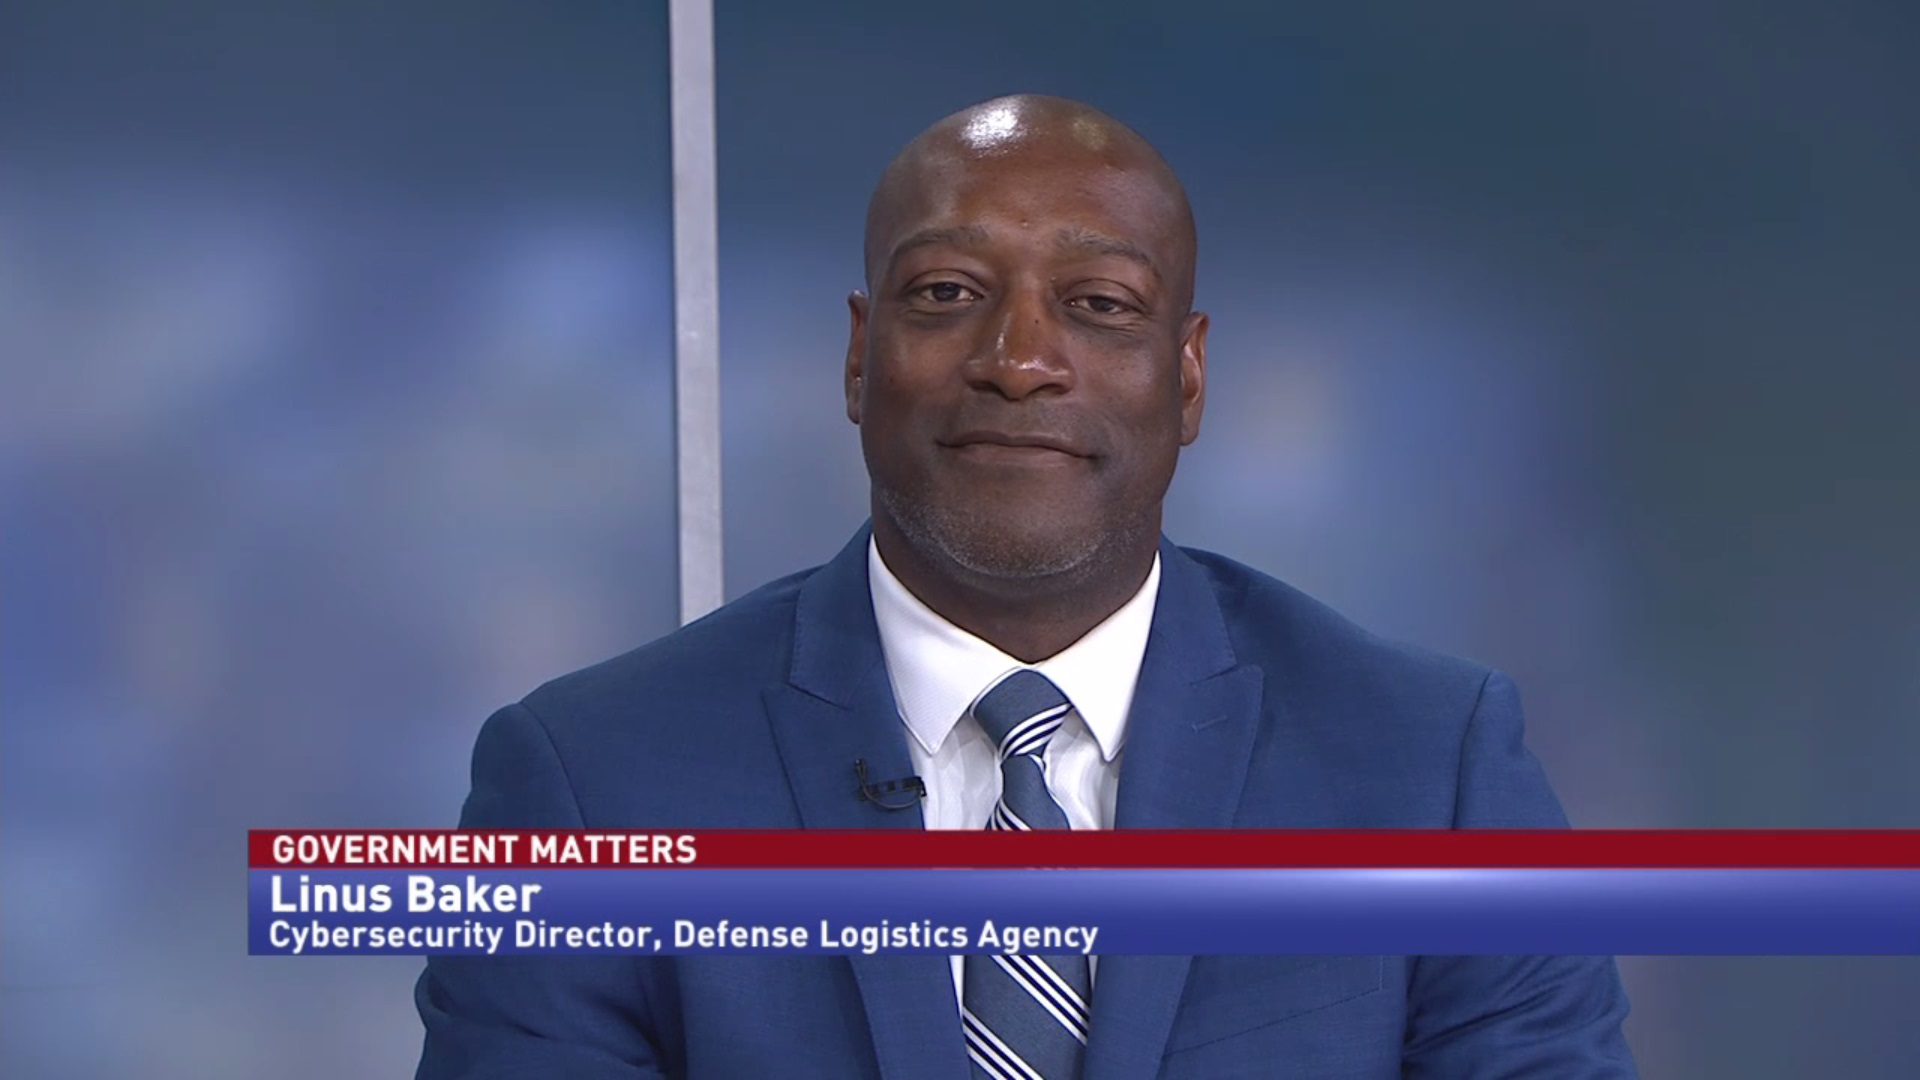 Priorities for DLA's Cyber Resilience Integration Initiative